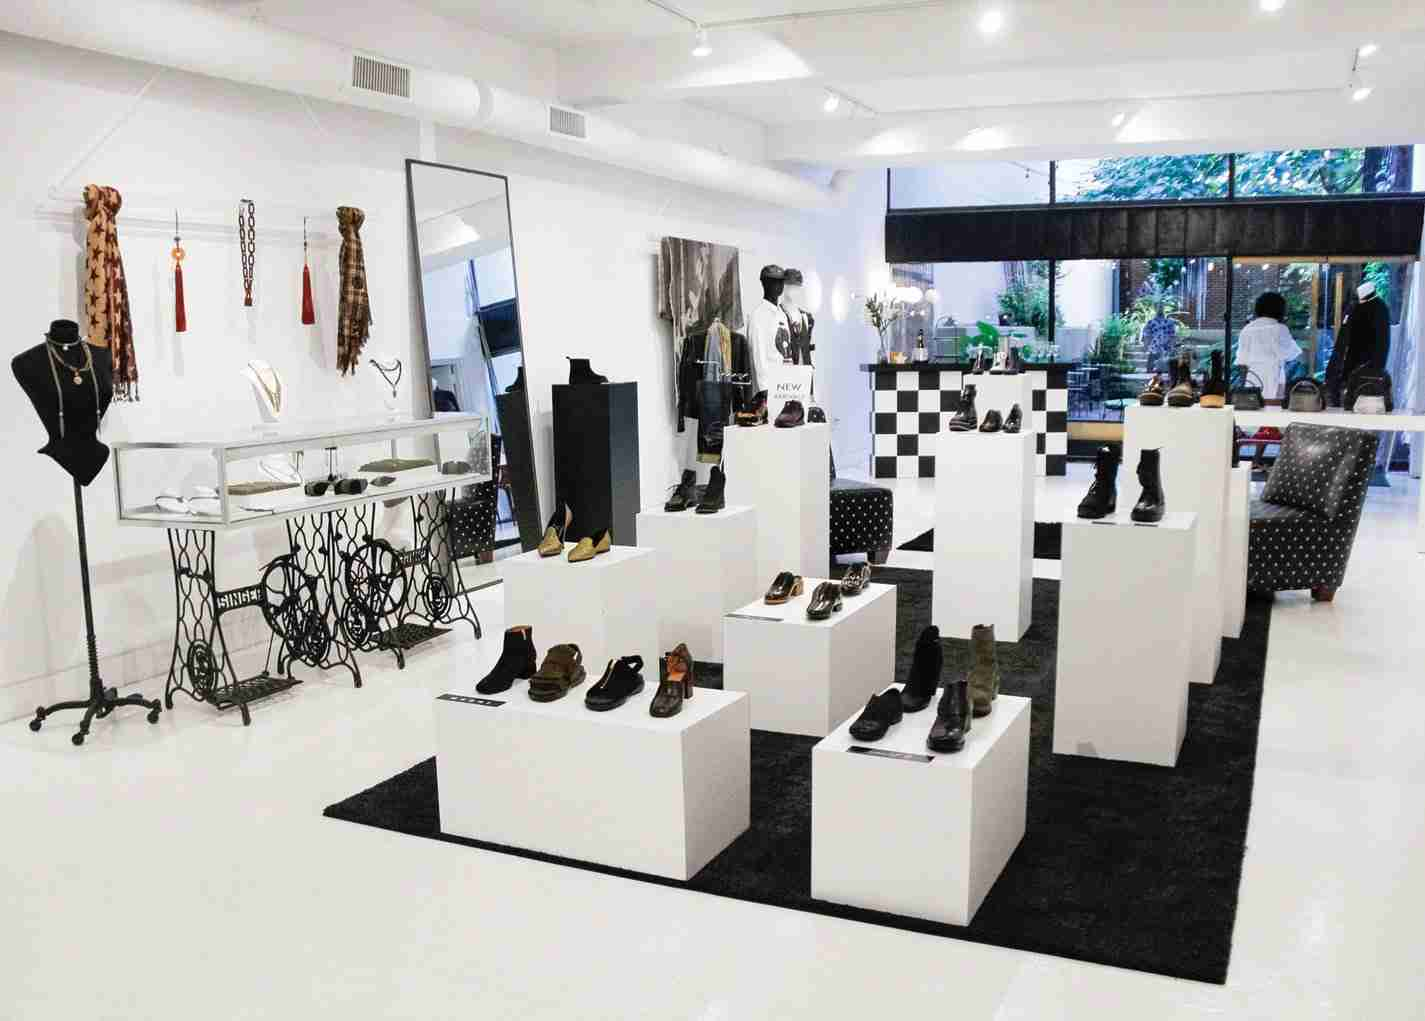 Dress to Impress <br>Top Fashion Trends at Three Big City Boutiques